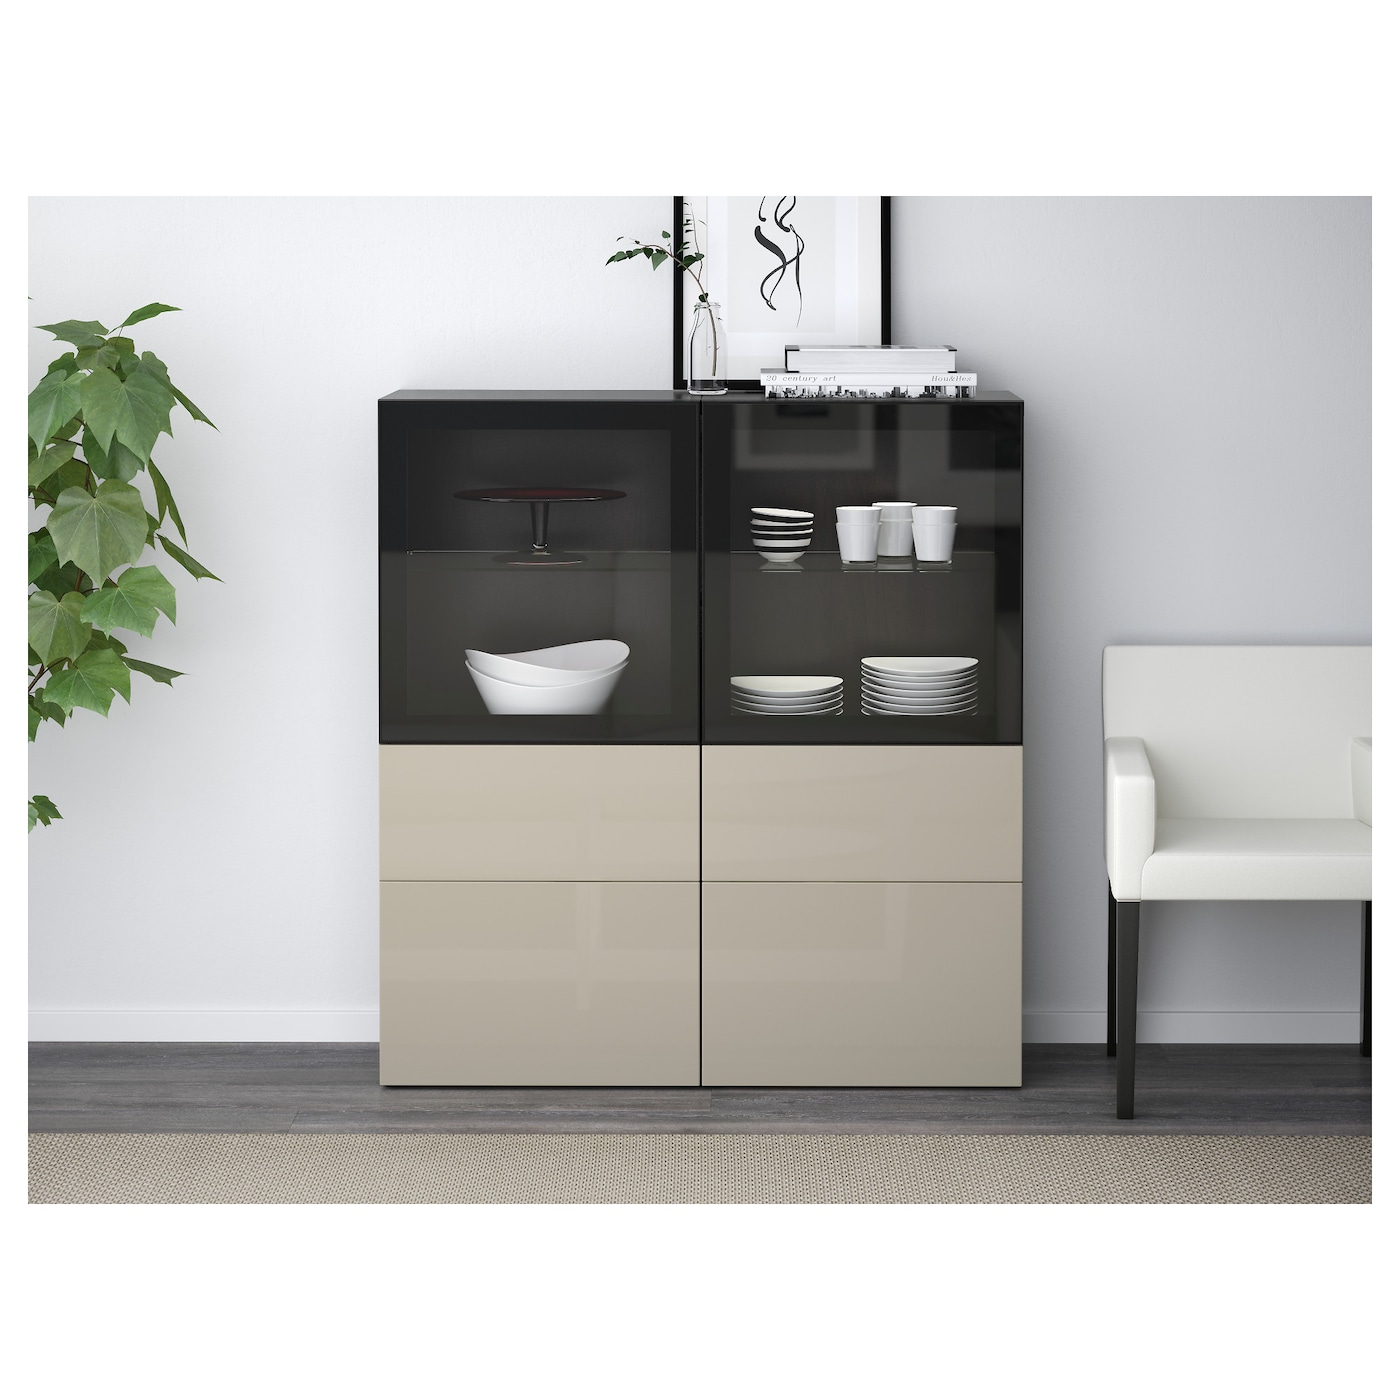 best storage combination w glass doors black brown selsviken high gloss beige clear glass. Black Bedroom Furniture Sets. Home Design Ideas